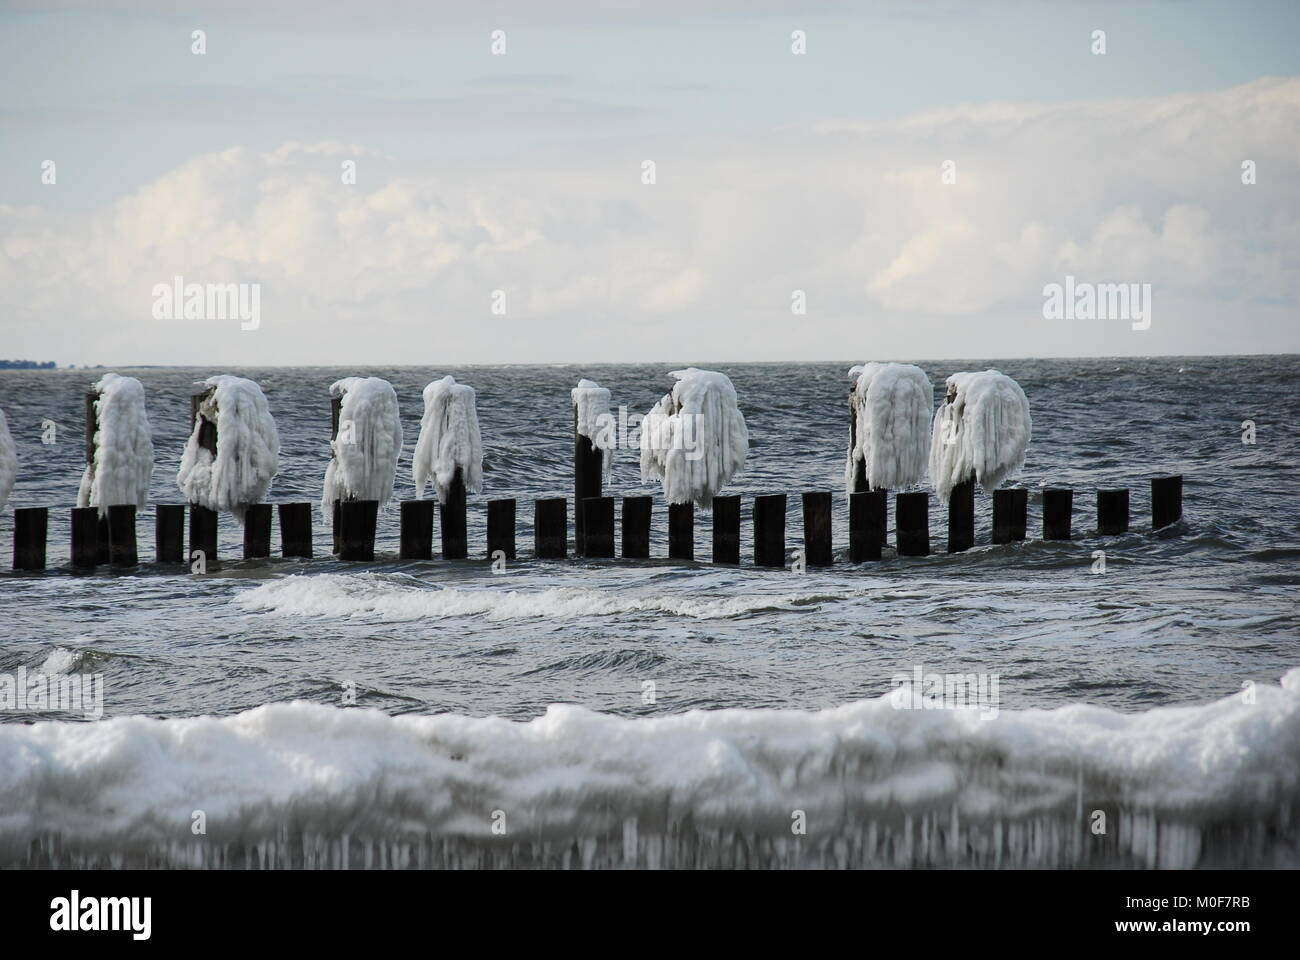 Accumulation of ice on groynes in front of a magnificent cloud background - Stock Image